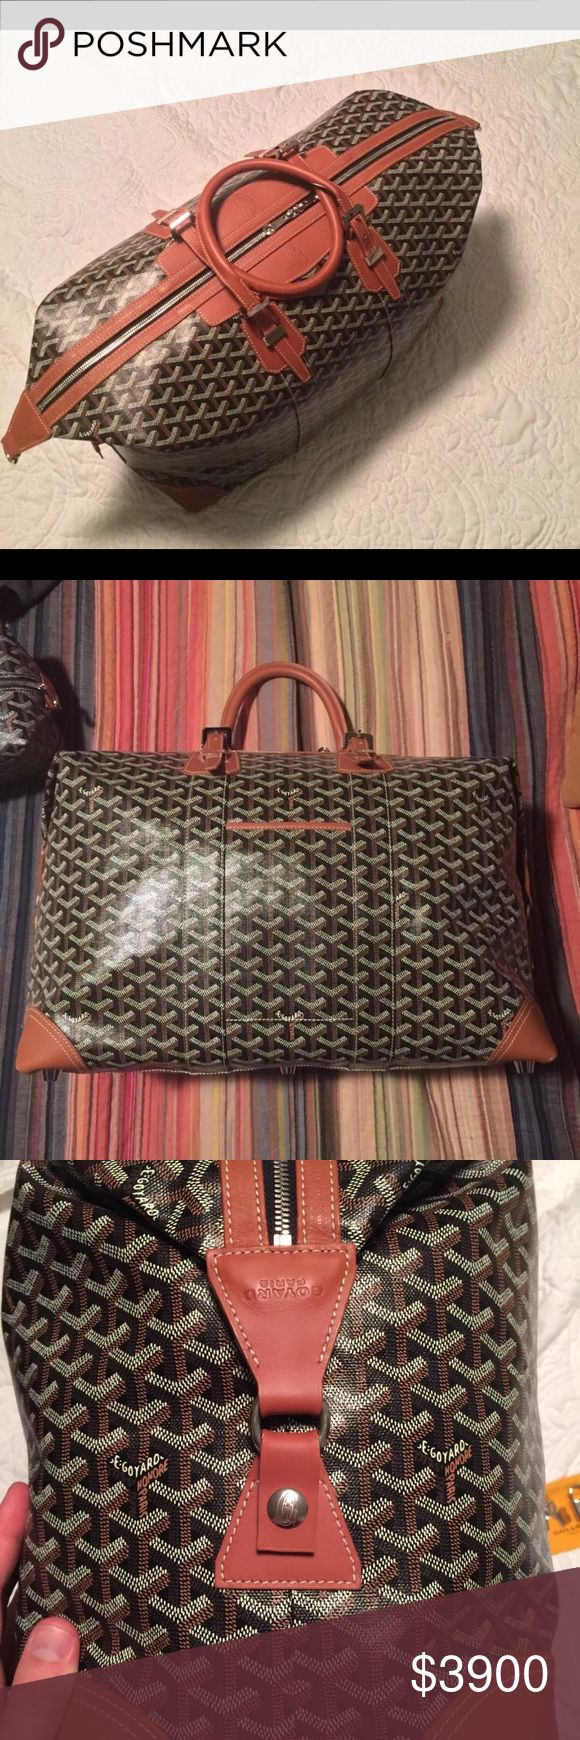 Best My Posh Closet Images On Pinterest Customer Service - How to create a paypal invoice goyard online store